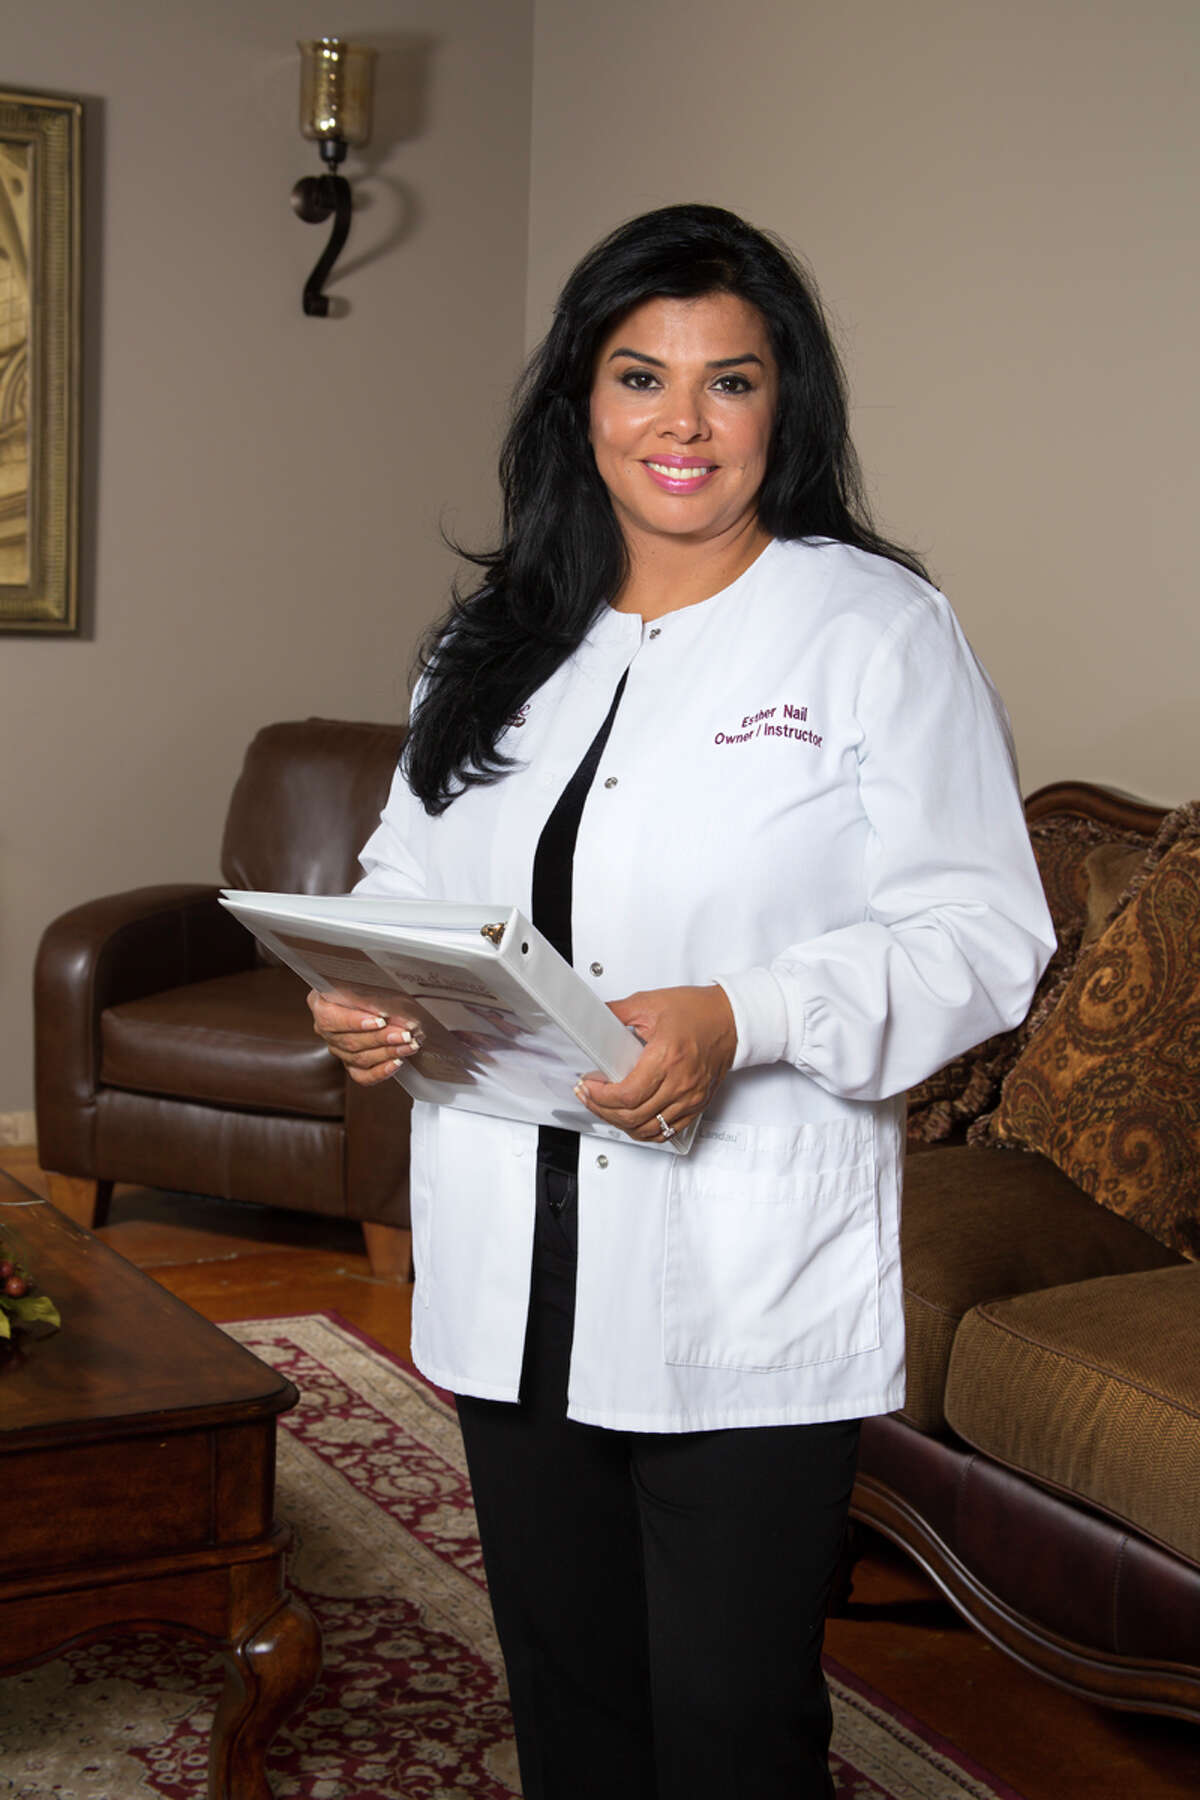 Esther Rodriguez-Nail, owner of San Antonio's Spa D'Sante, this year's repeat Gold winner for best spa. Rodriguez-Nail started her business 25 years ago and has expanded to four locations and the Academy for Massage Therapy Training.